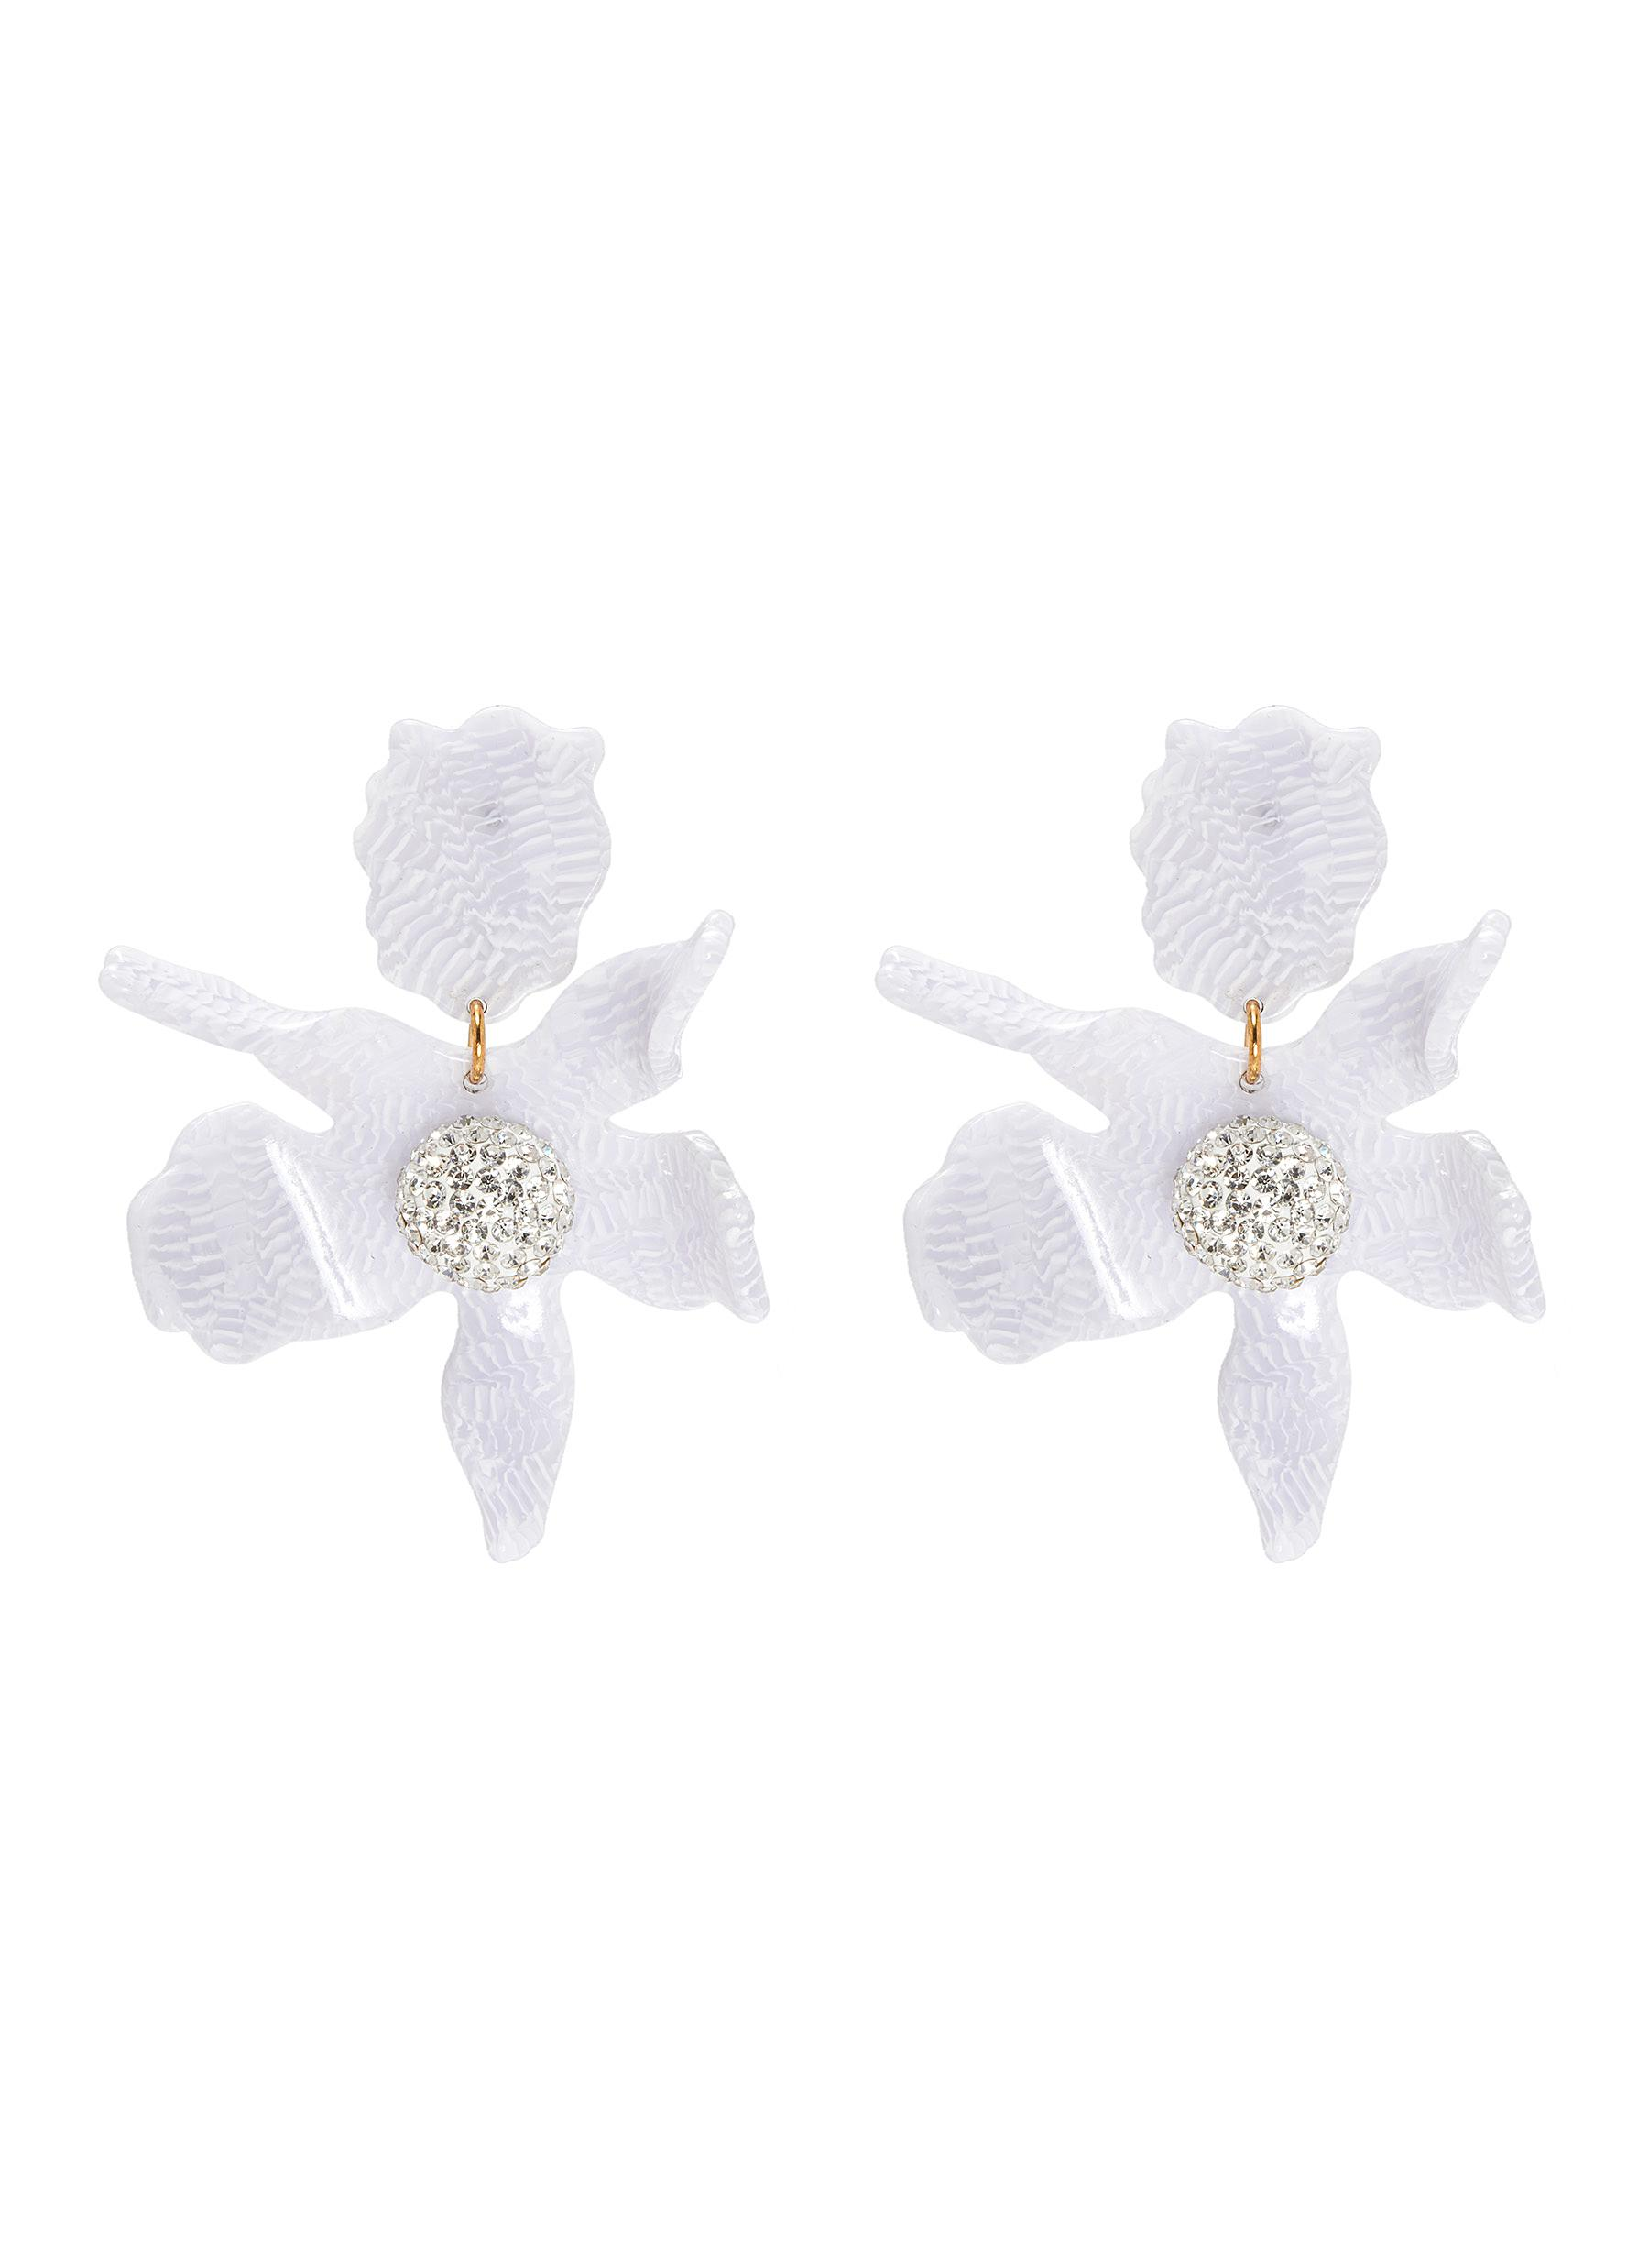 Lele Sadoughi 'Crystal' lily earrings